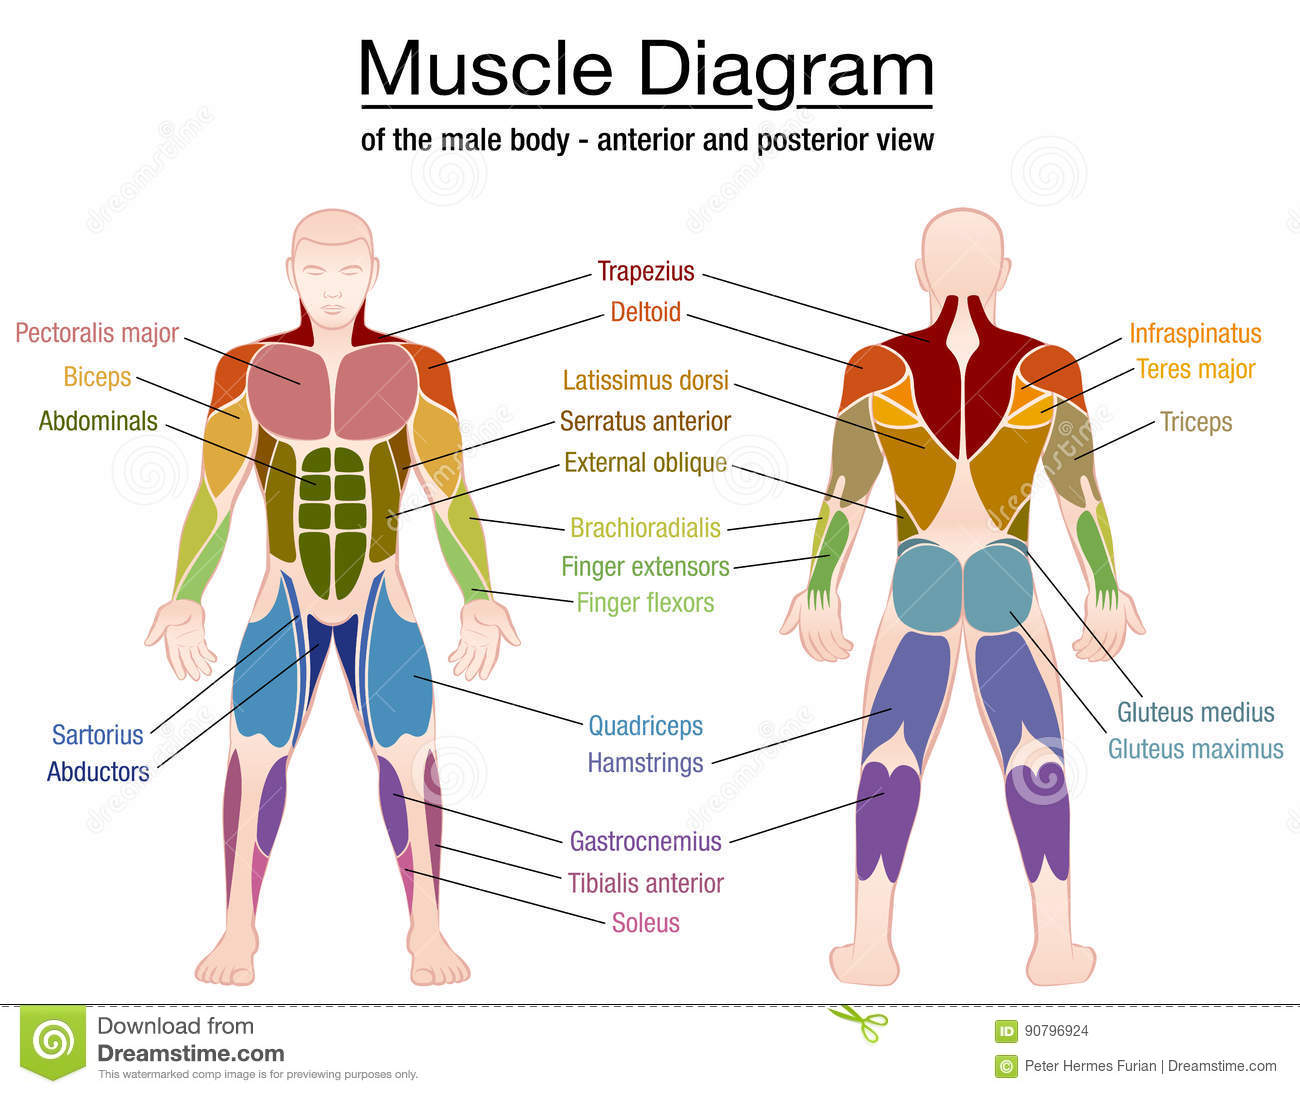 muscle diagram male body names stock vector - image: 90796924, Muscles